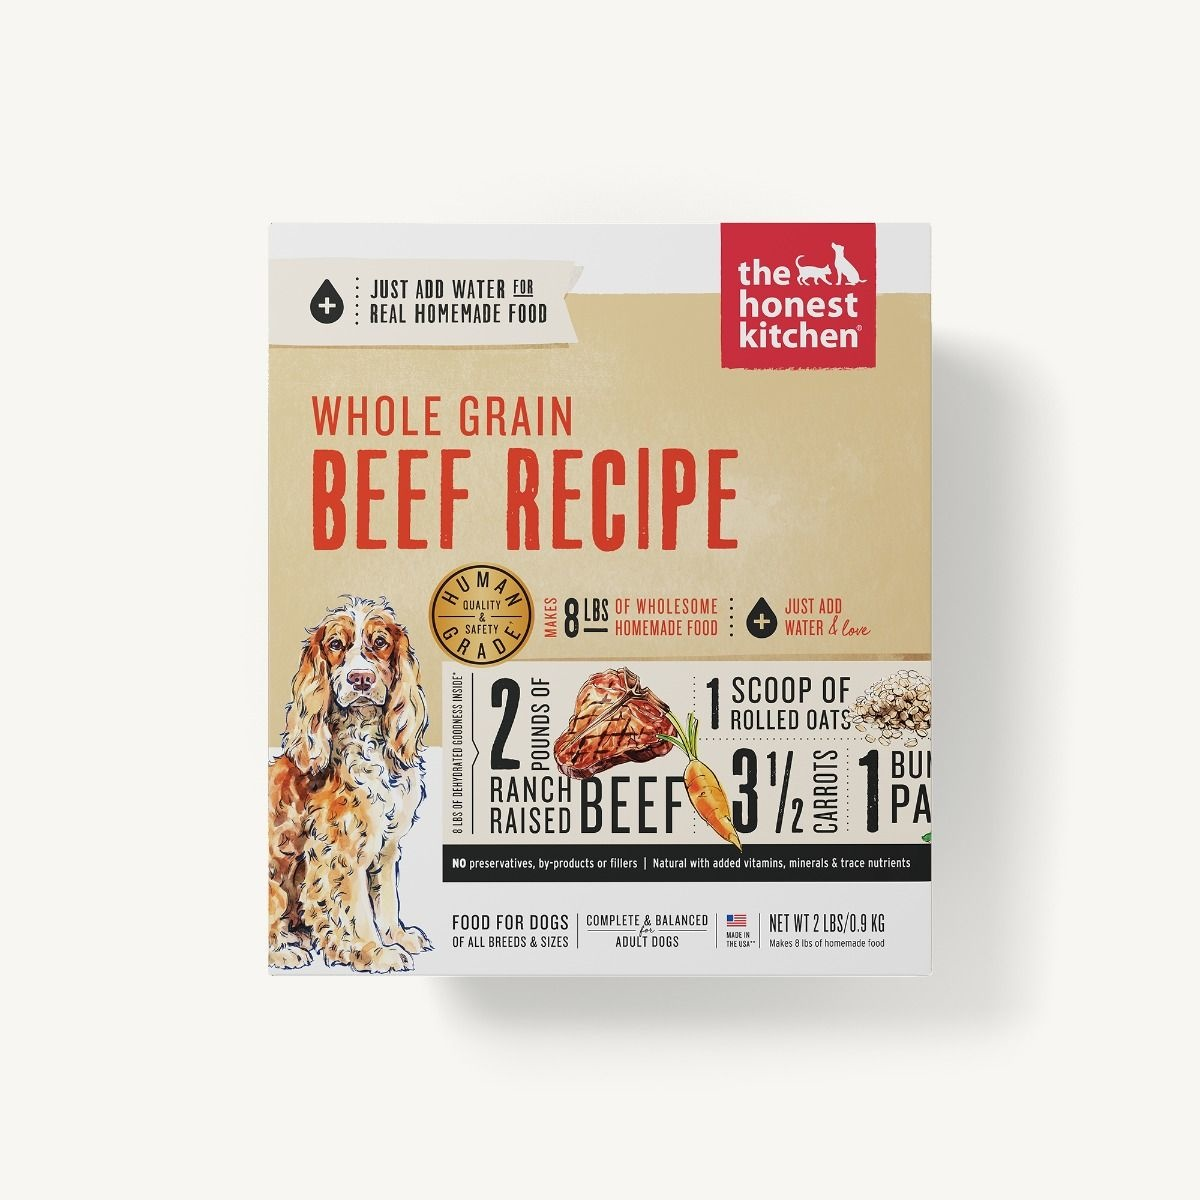 The Honest Kitchen Honest Kitchen Dehydrated Whole Grain Beef Recipe